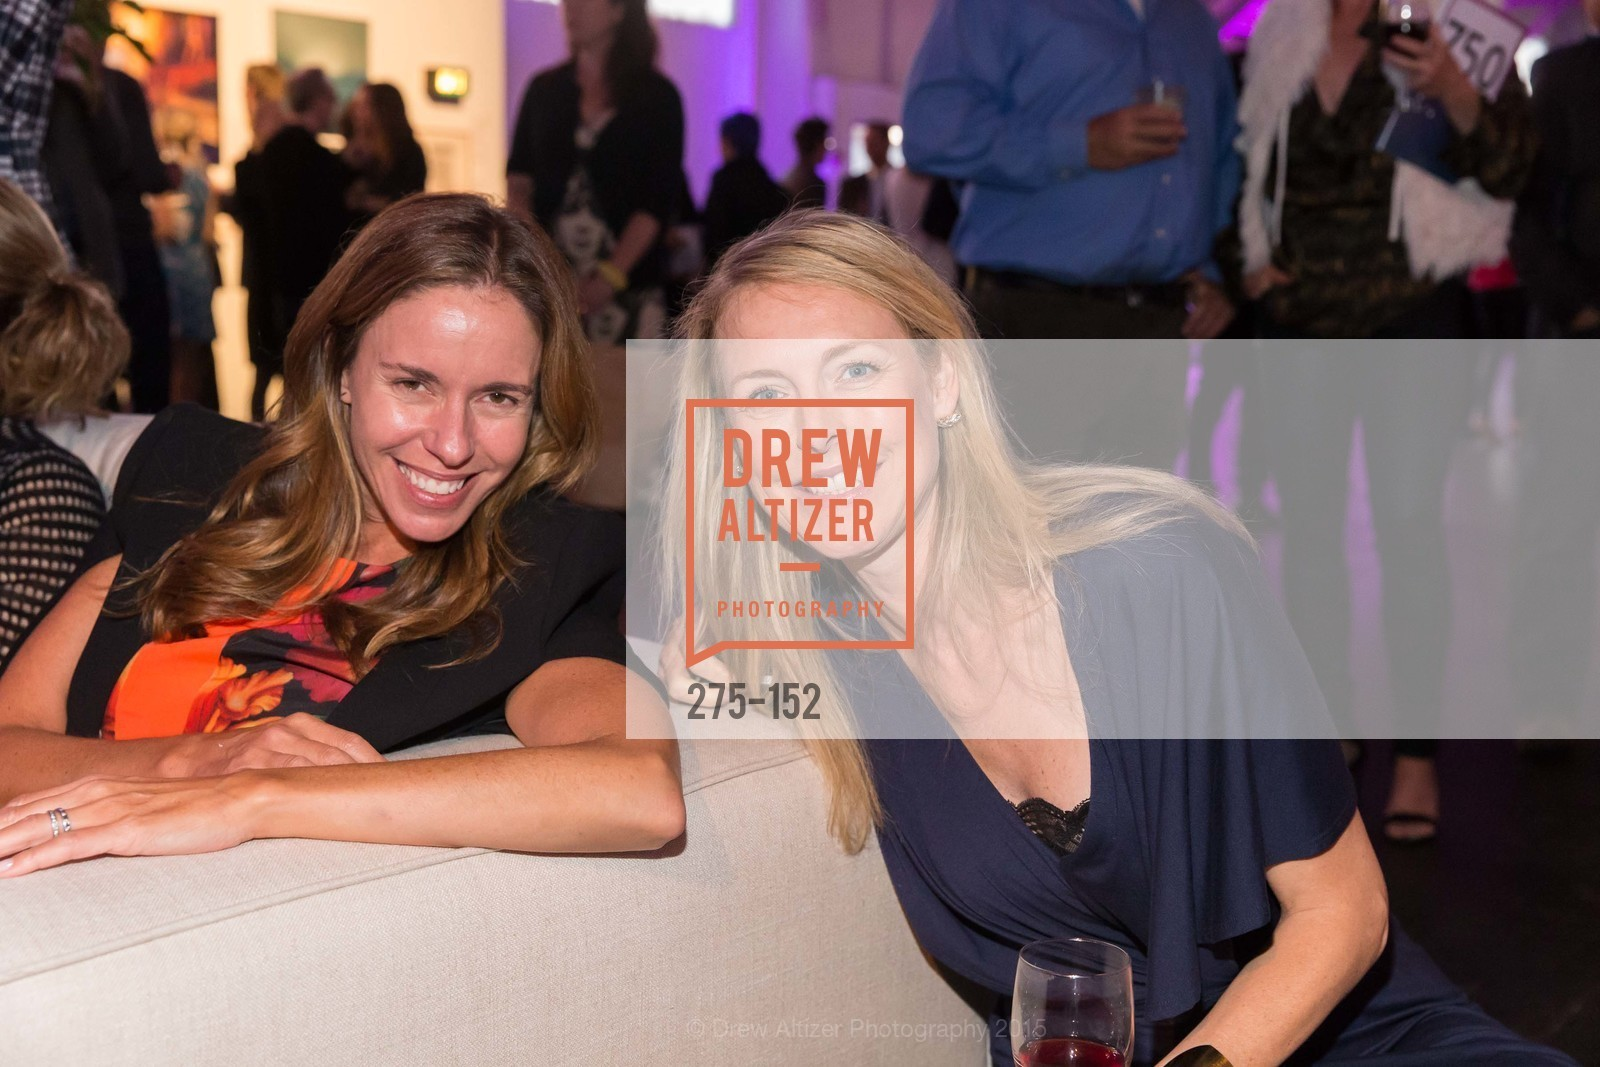 Stephanie Plexico, Kate Chung, Headlands Center for the Arts Benefit Auction, Fort Mason Festival, Pavilon, June 2nd, 2015,Drew Altizer, Drew Altizer Photography, full-service agency, private events, San Francisco photographer, photographer california